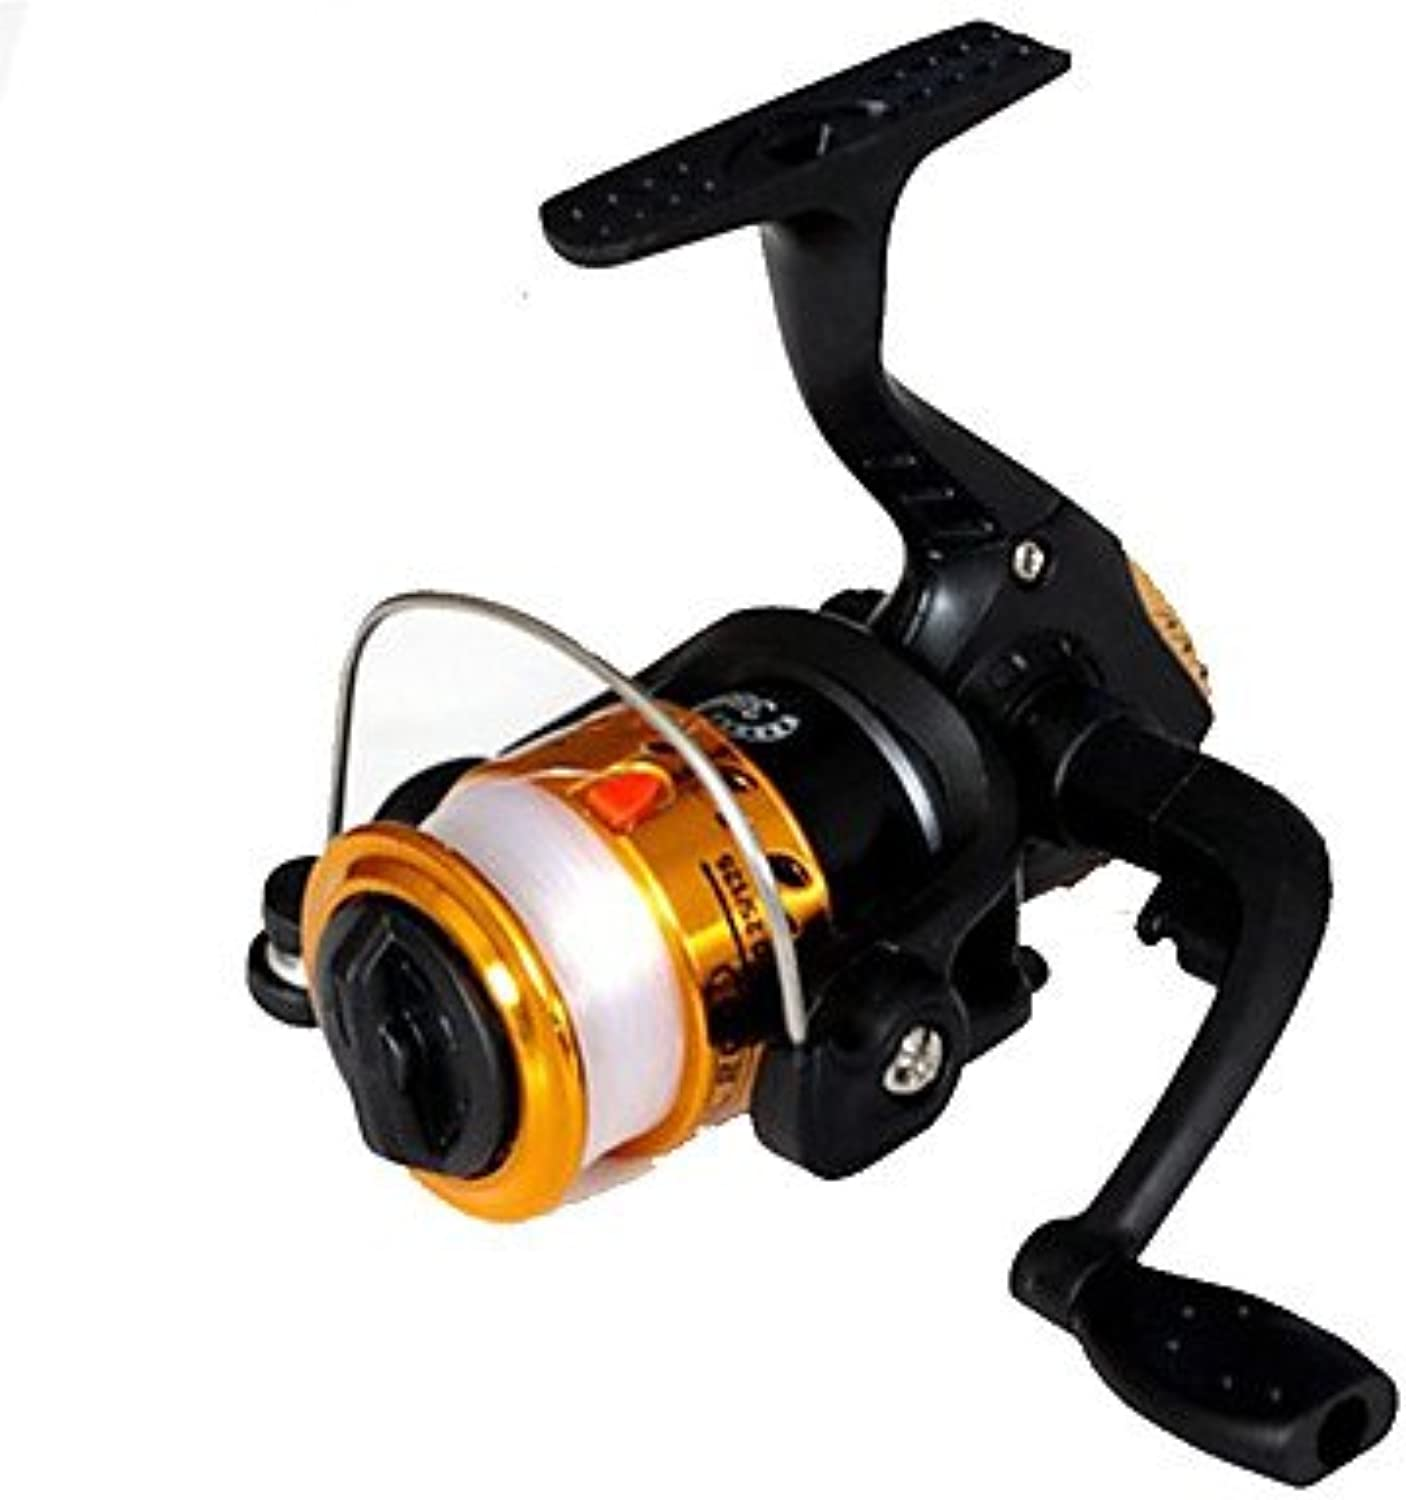 Rts Fishing Reel Spinning Reels 2.6 1 1 Ball Bearings Exchangable General Fishing200A